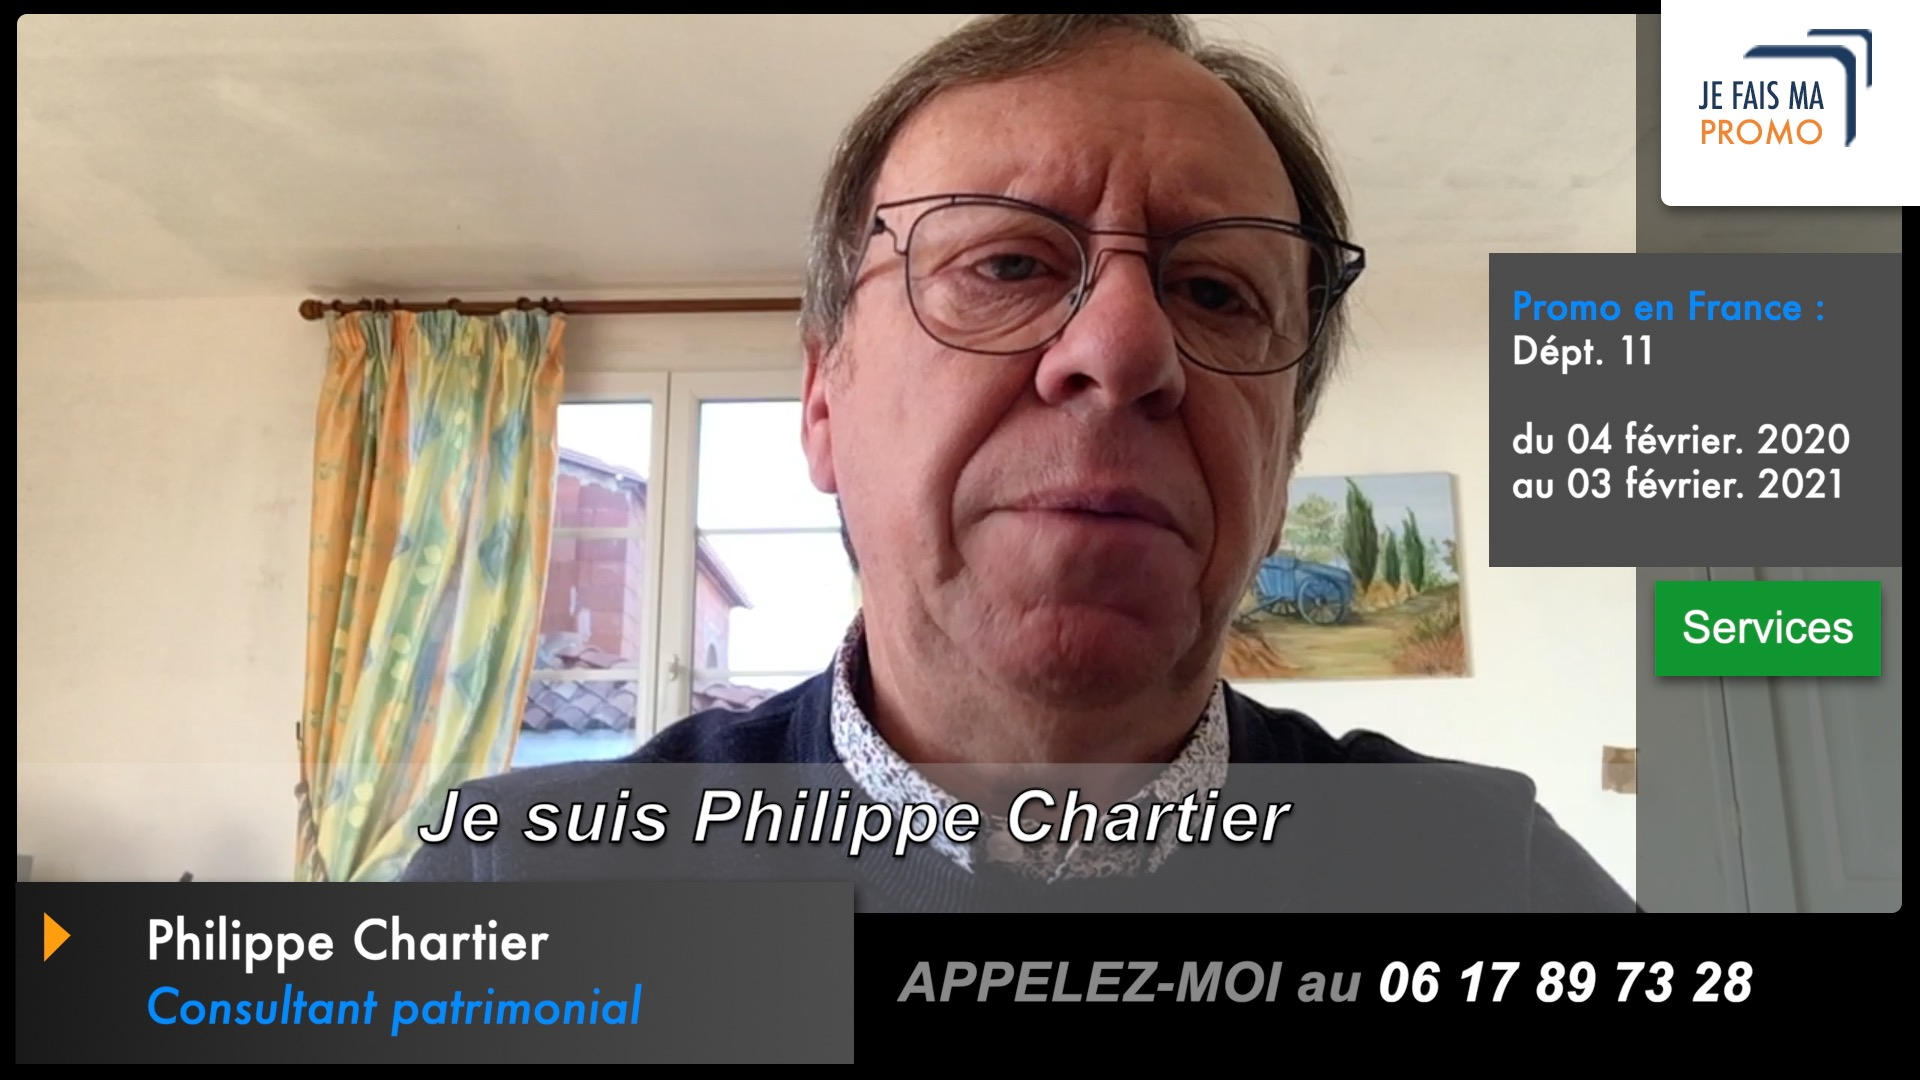 Philippe Chartier